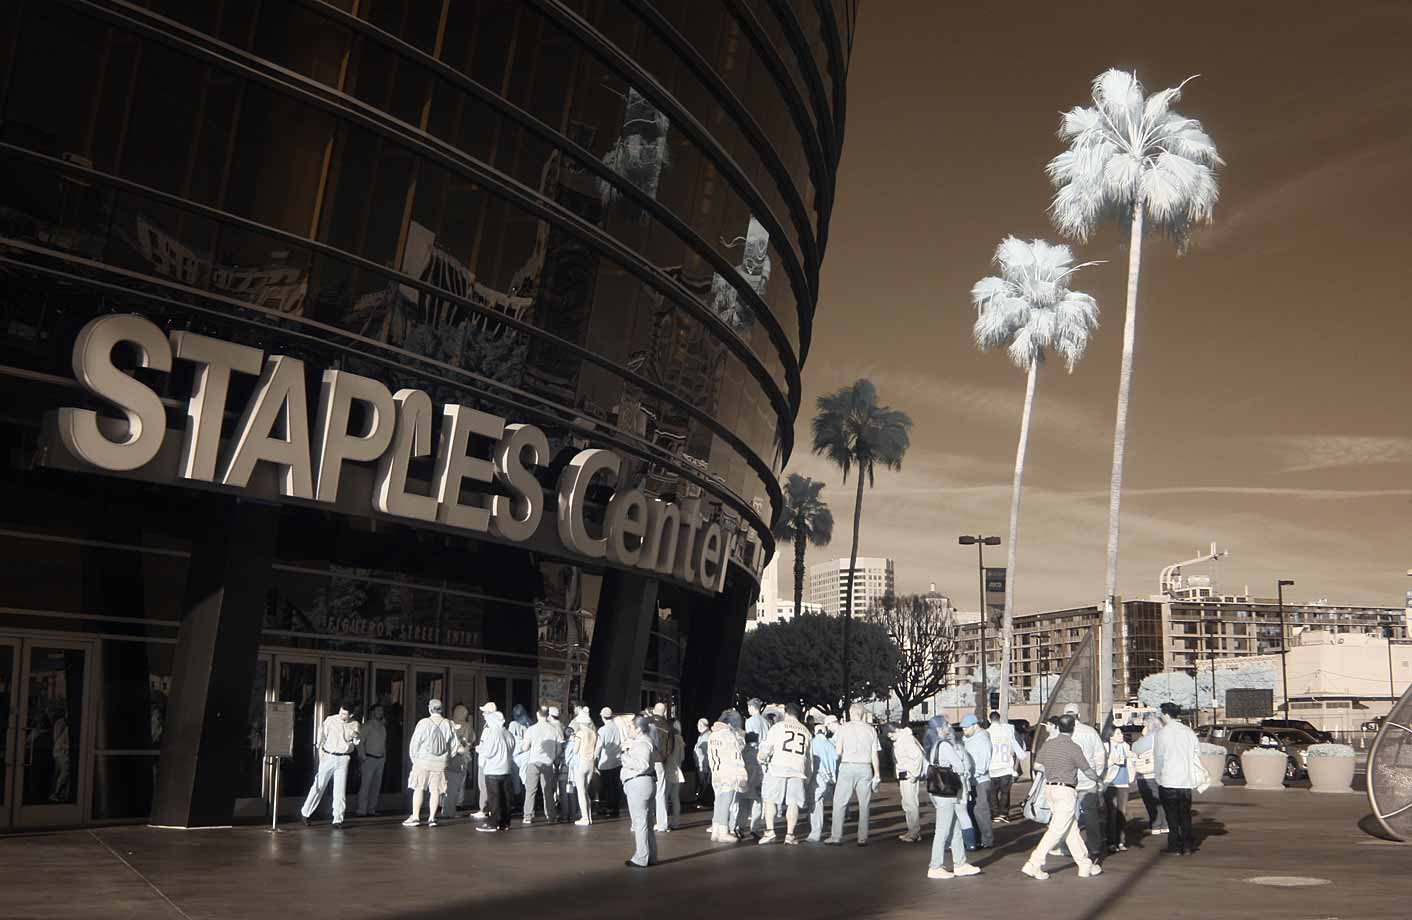 Fans arrive for a game between the Kings and the Phoenix Coyotes at the Staples Center in Los Angeles on March 17, 2014.